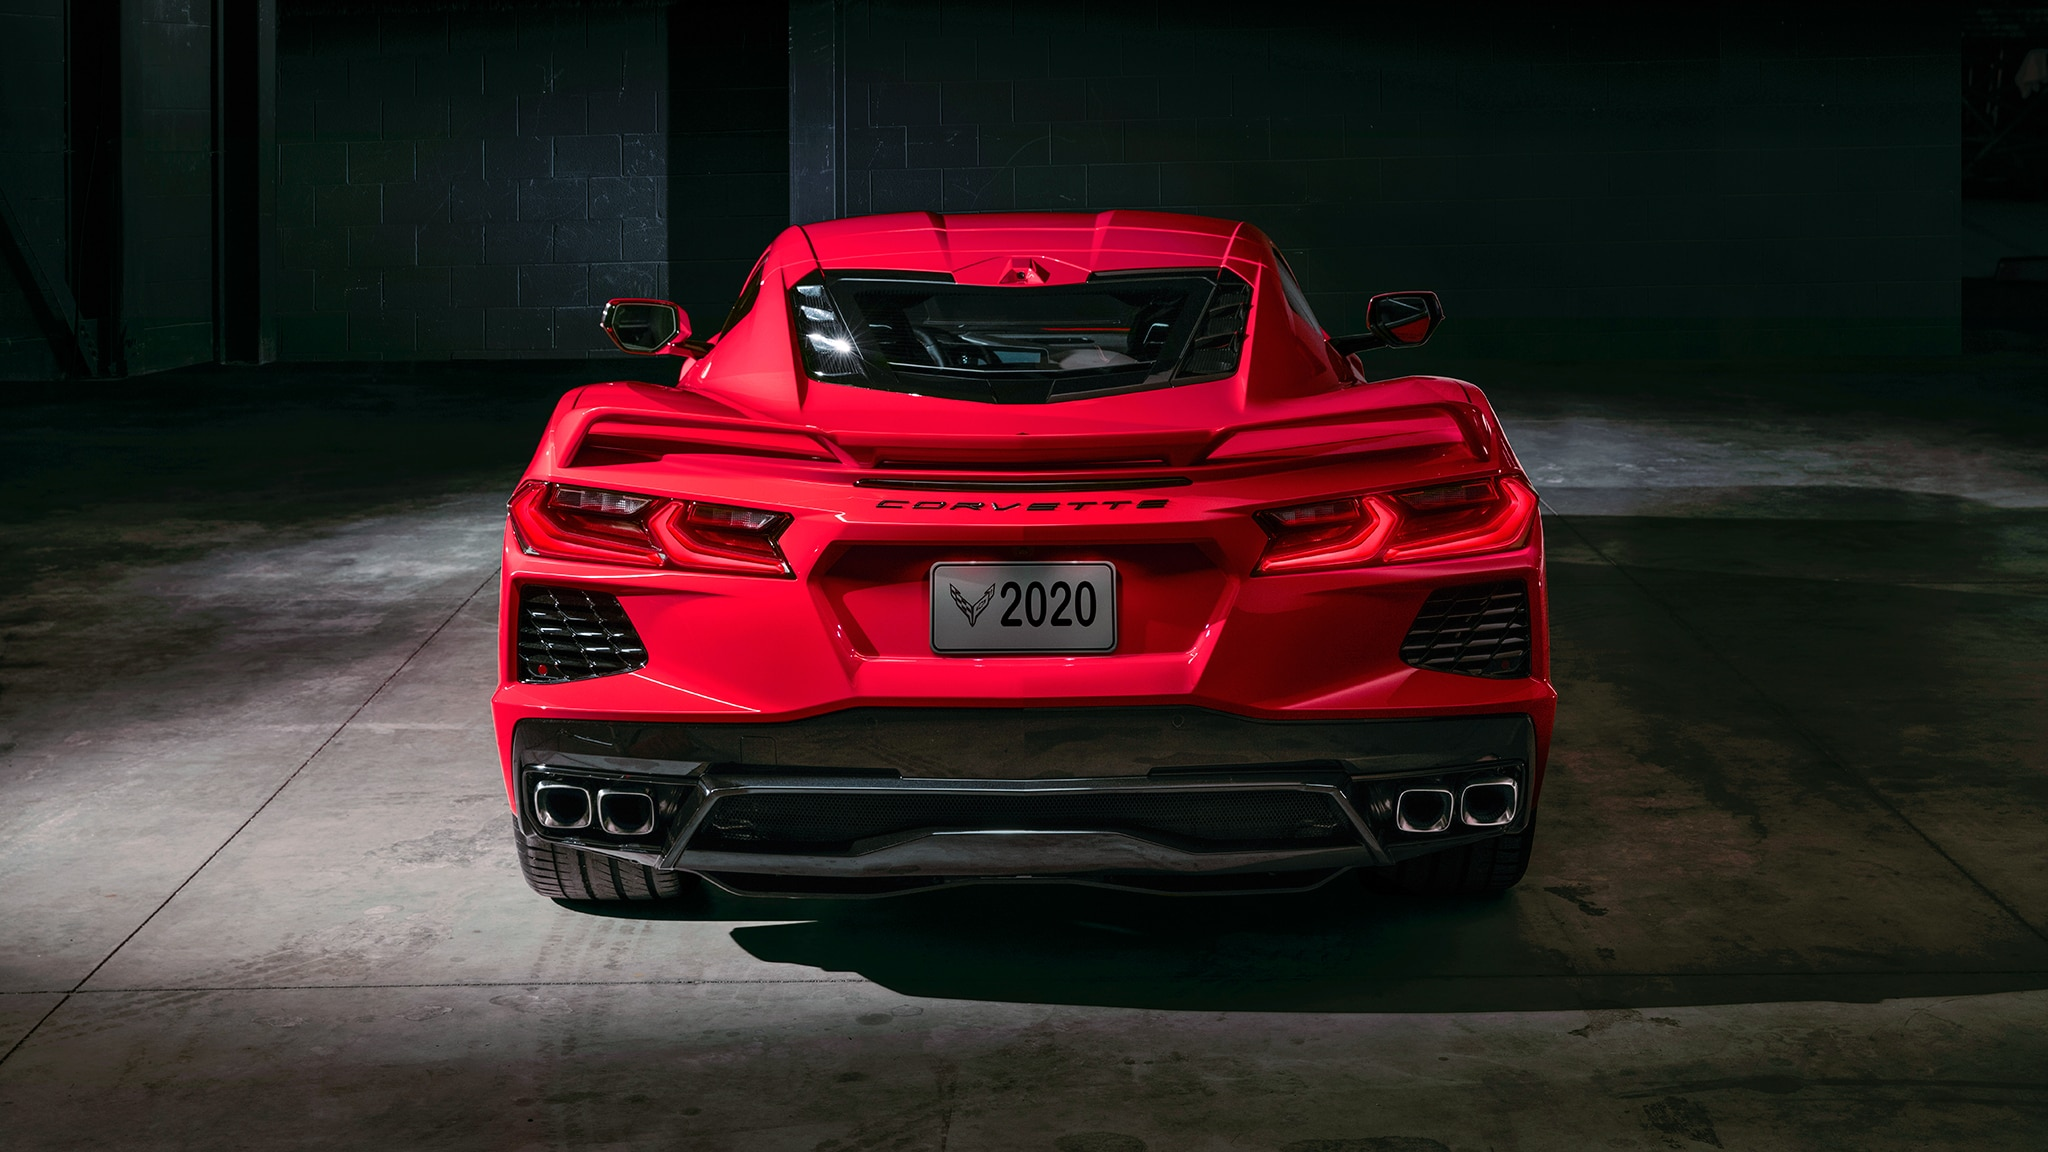 2020 Chevrolet Corvette C8 Offers 12 Paint Colors & 6 ...